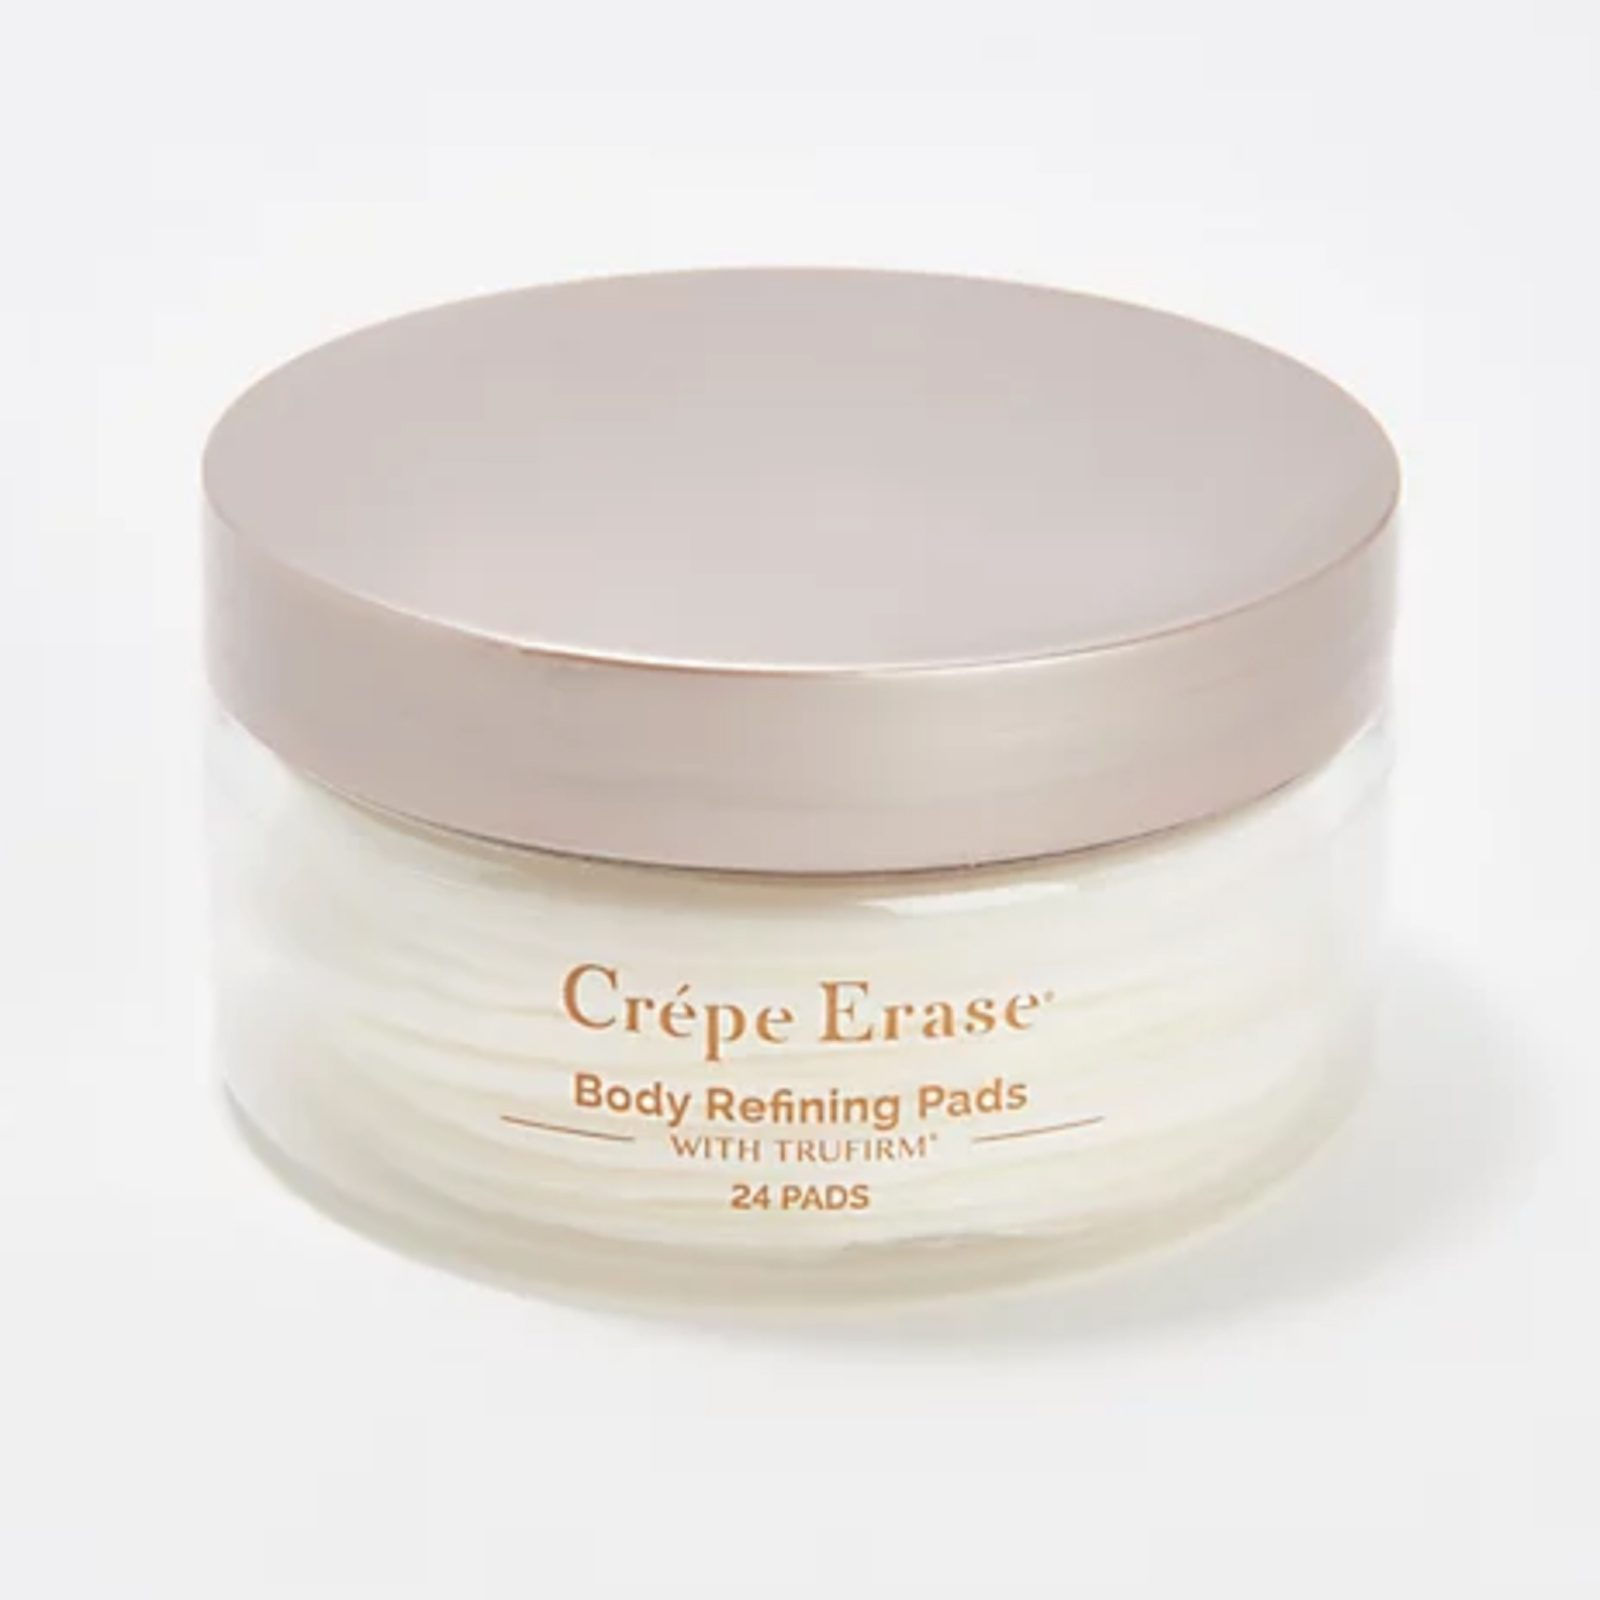 Crepe Erase Triple Acid Targeted Body Peel Pads